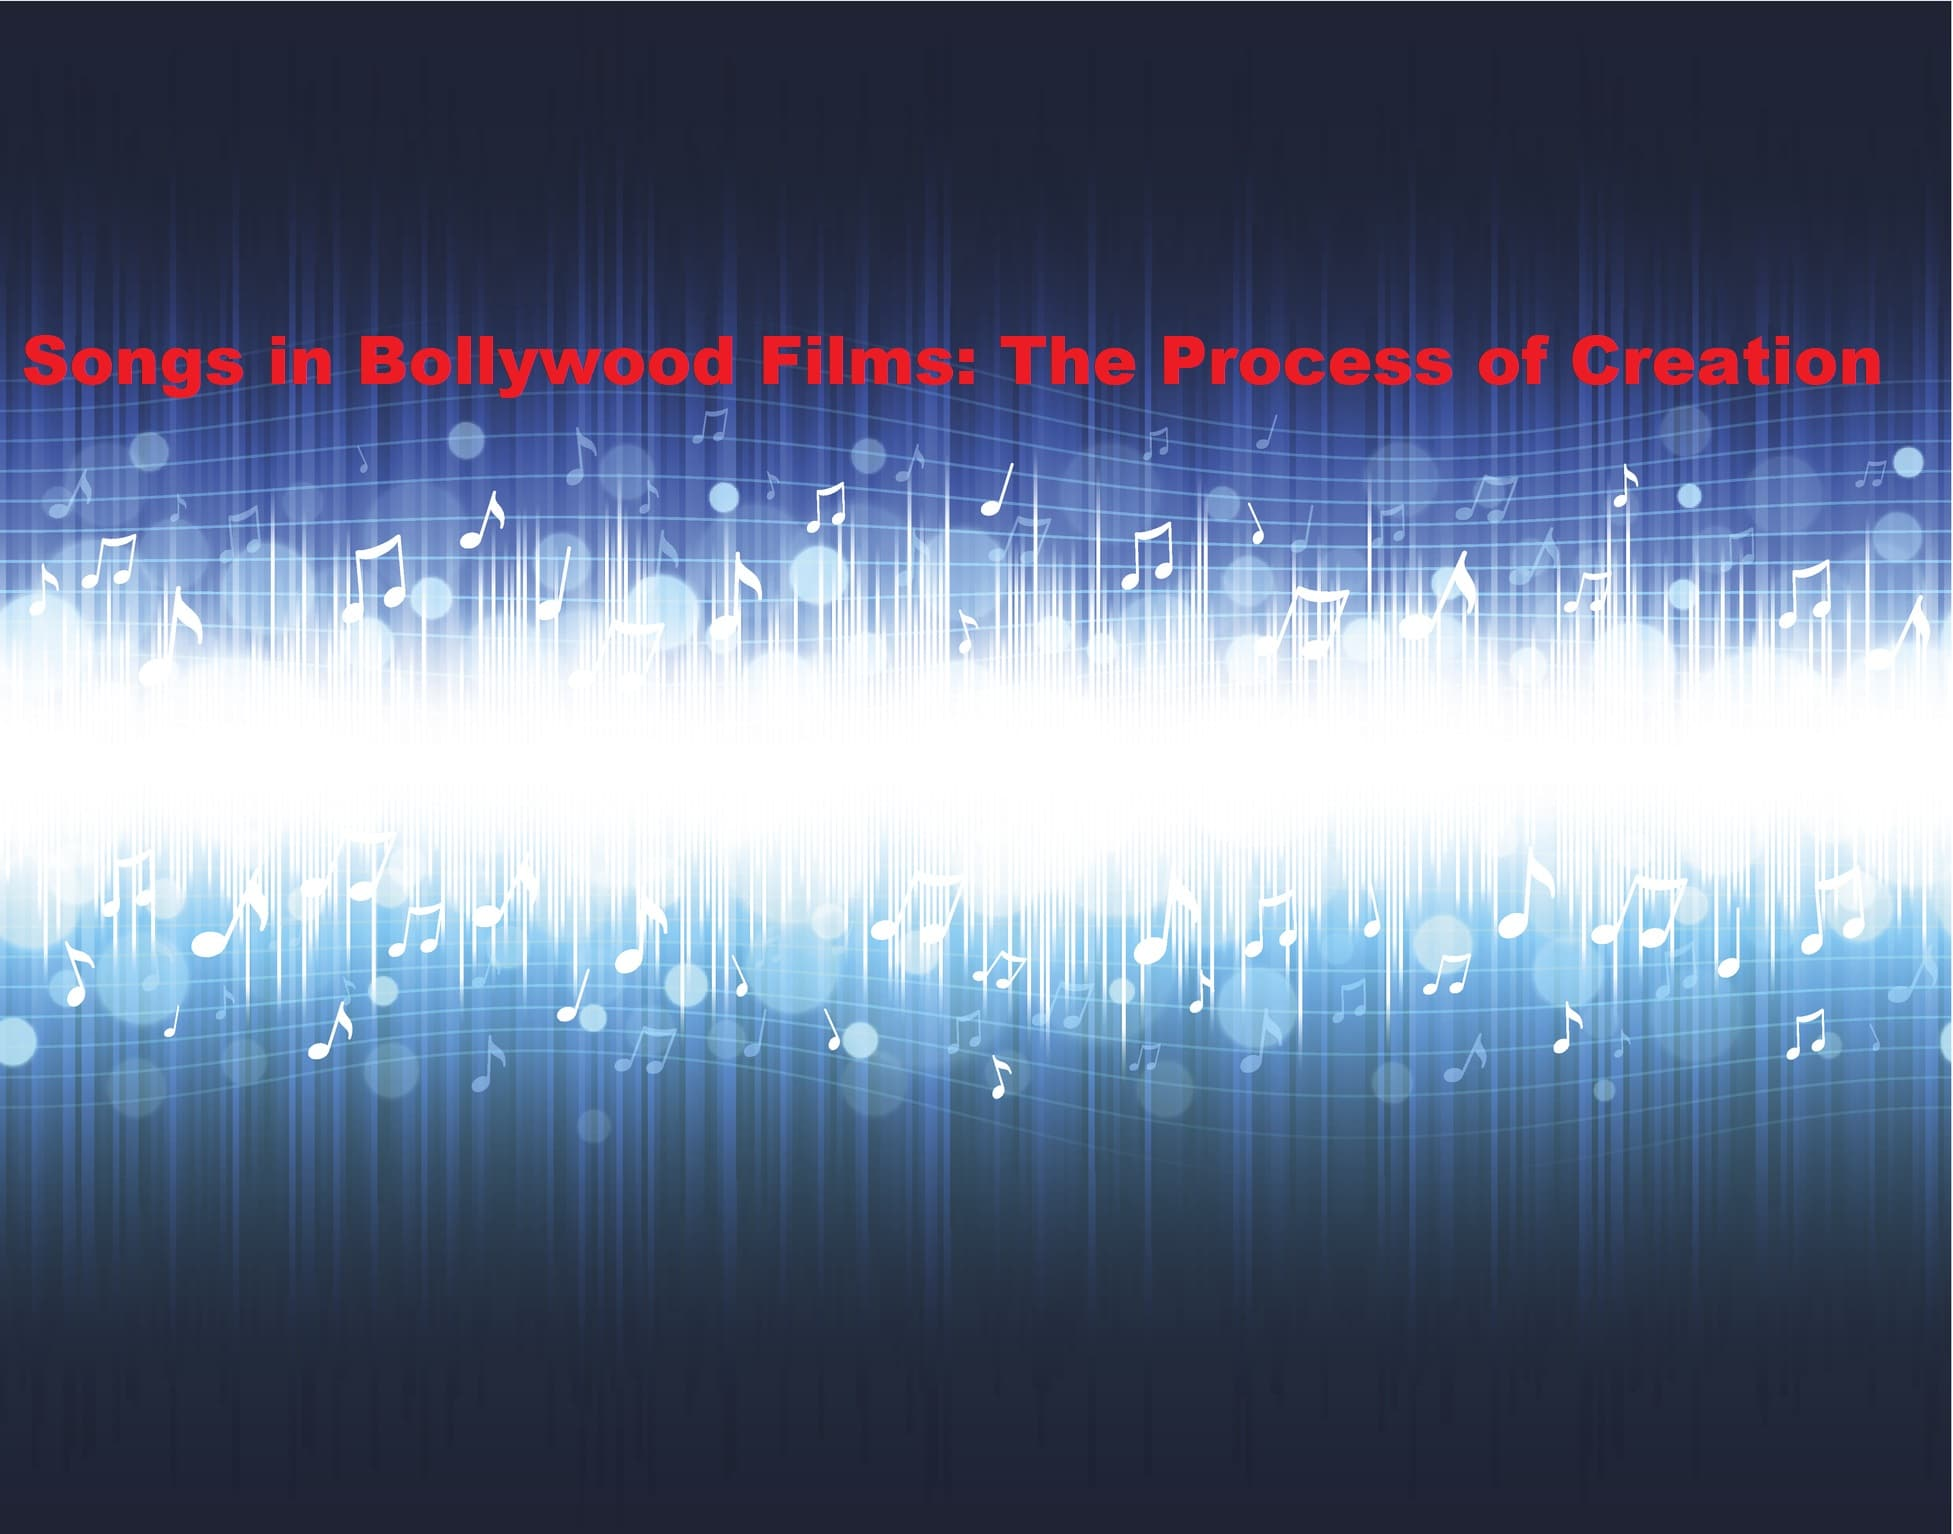 Songs in Bollywood Films: The Process of Creation